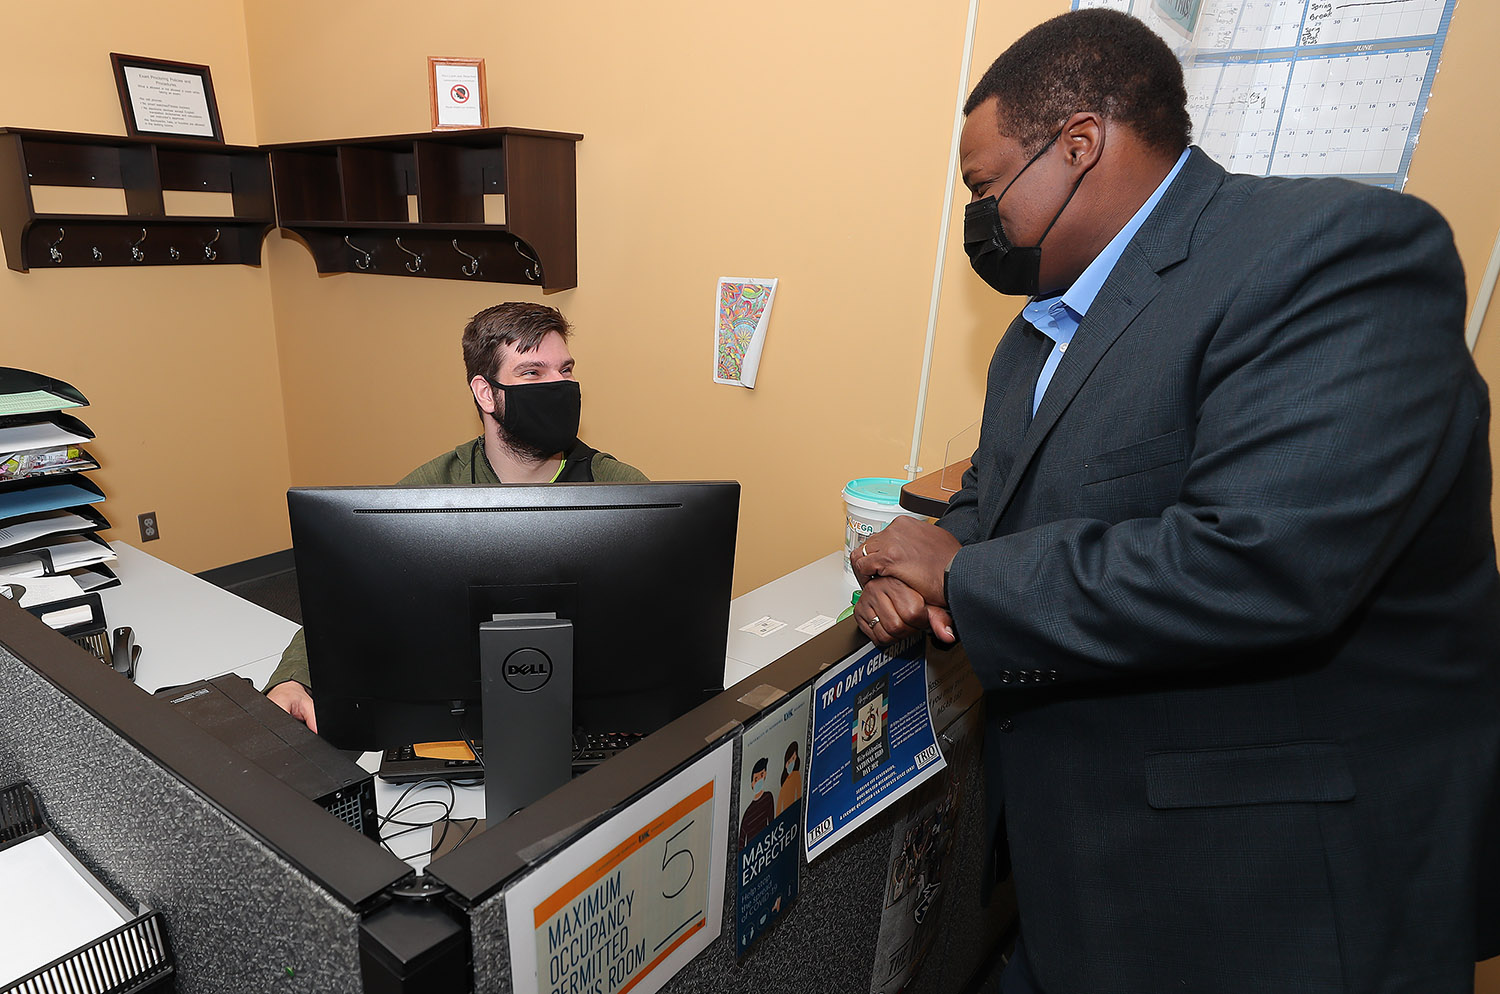 UNK student Christian Mikulecky of Omaha, left, and TRIO Student Support Services Assistant Director Rashawn Harvey chat inside the Academic Success Offices on campus. TRIO assists first-generation and income-qualified students and those with documented disabilities during their pursuit of a college degree by providing academic and personal support, financial guidance and career development opportunities. (Photos by Erika Pritchard, UNK Communications)